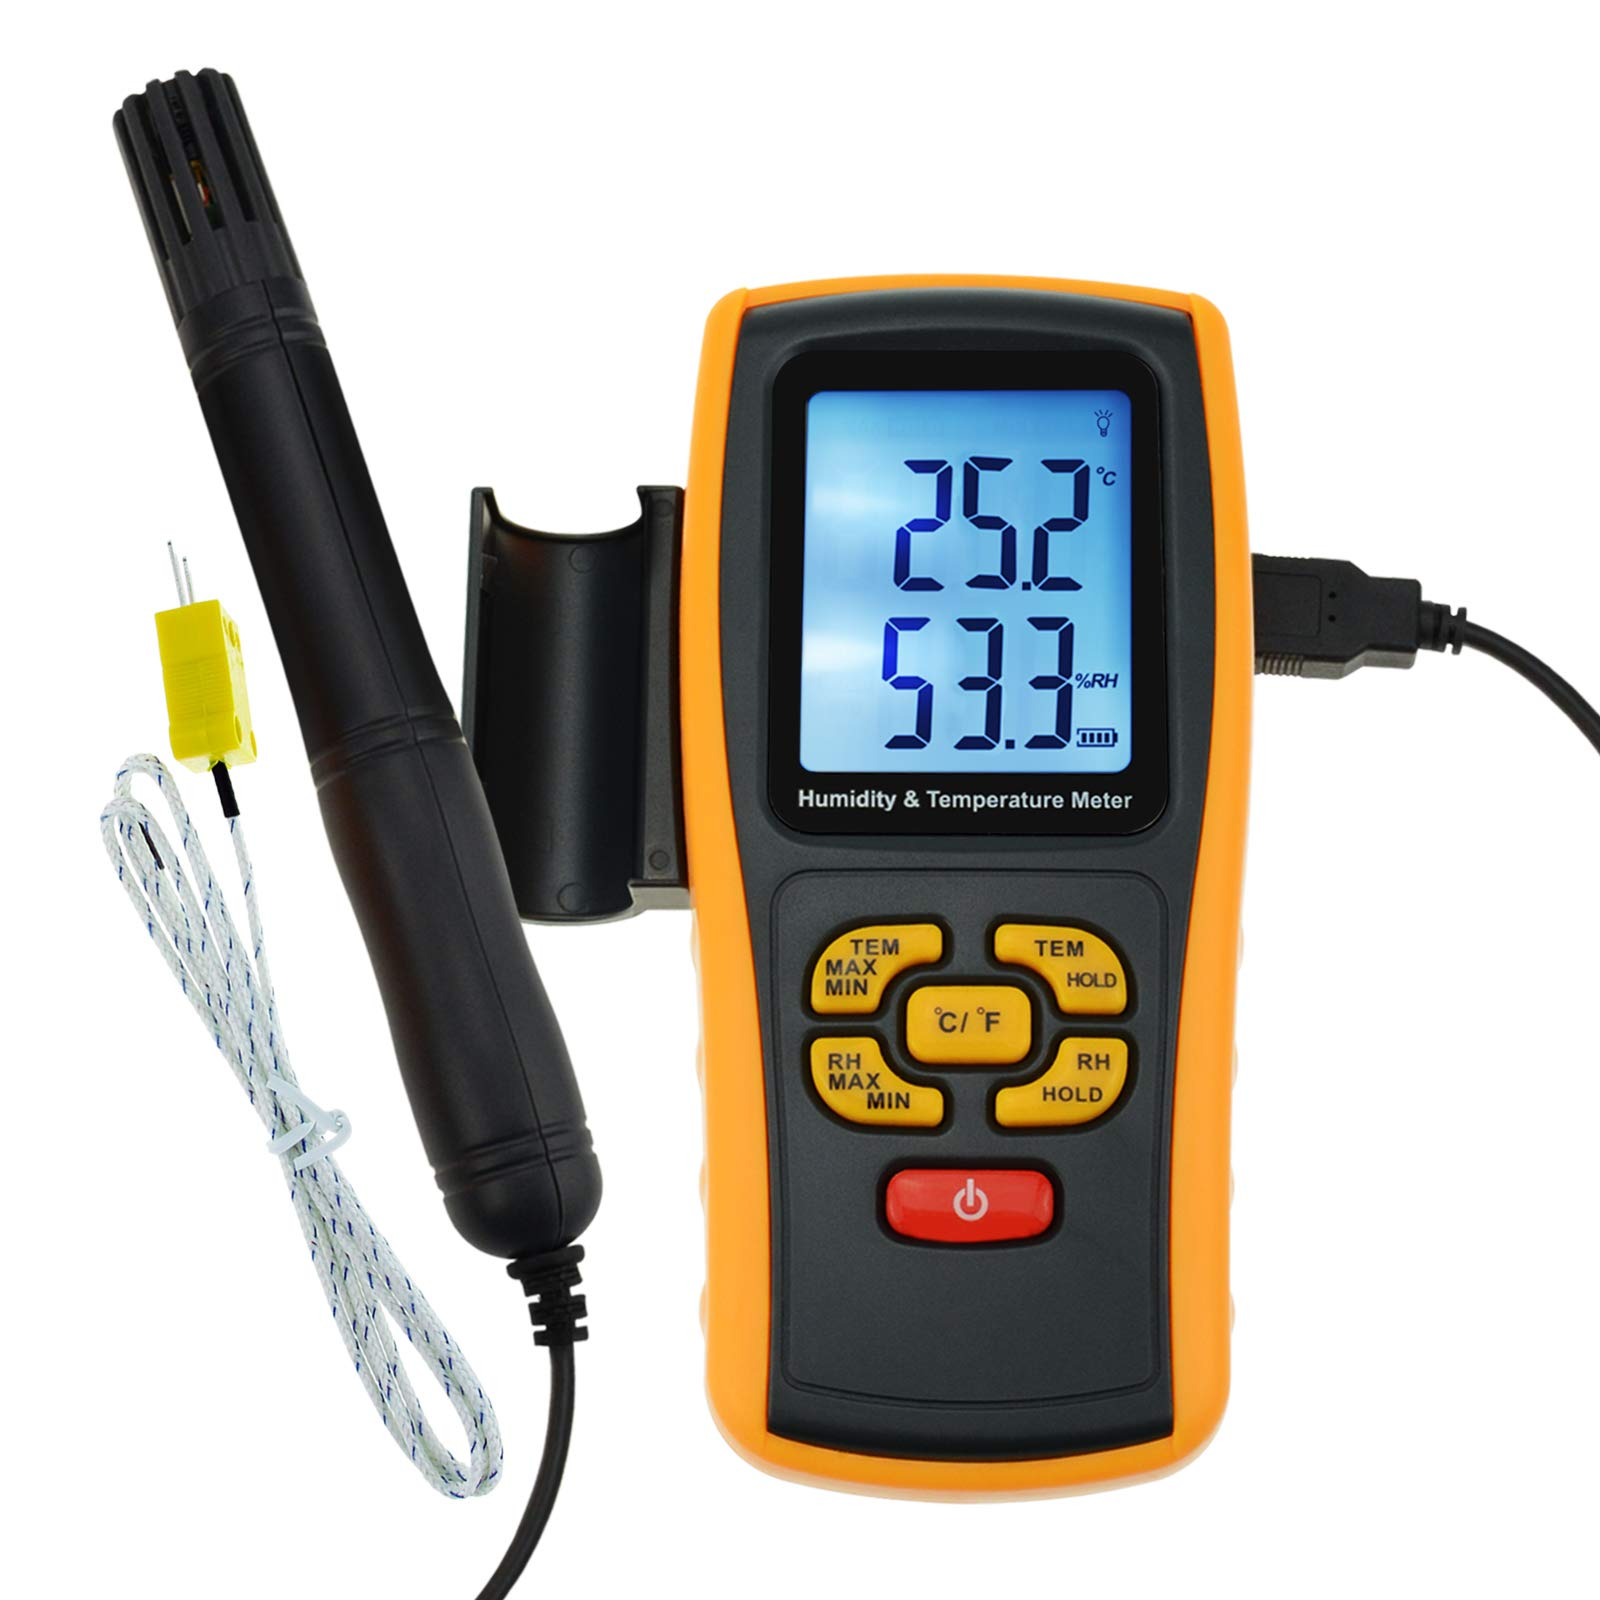 Instrument LCD Digital Humidity and Temperature Meter 2 in 1 Temperature Measurement, with Type K Thermocouple Sensor Probe